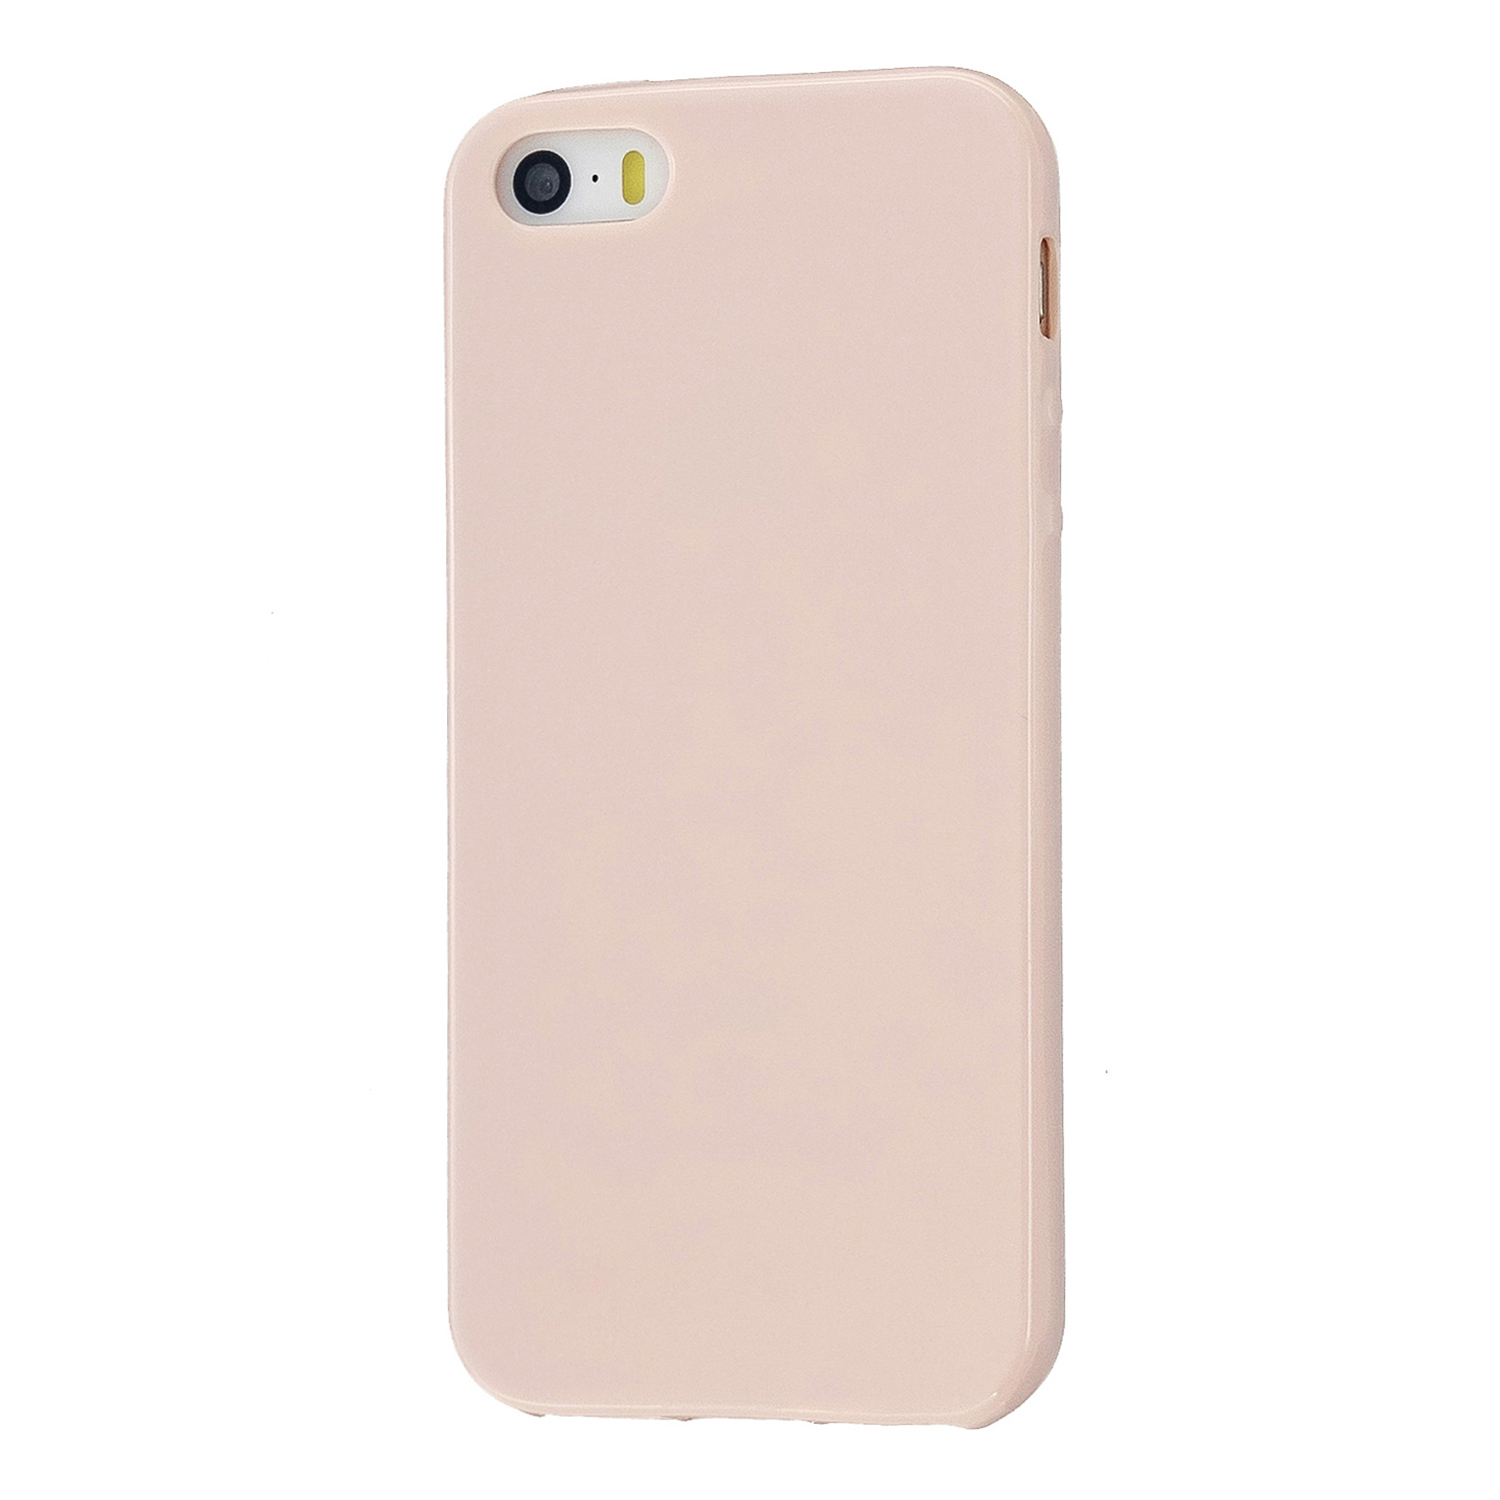 For iPhone 5/5S/SE/6/6S/6 Plus/6S Plus/7/8/7 Plus/8 Plus Cellphone Cover Soft TPU Bumper Protector Phone Shell Sakura pink